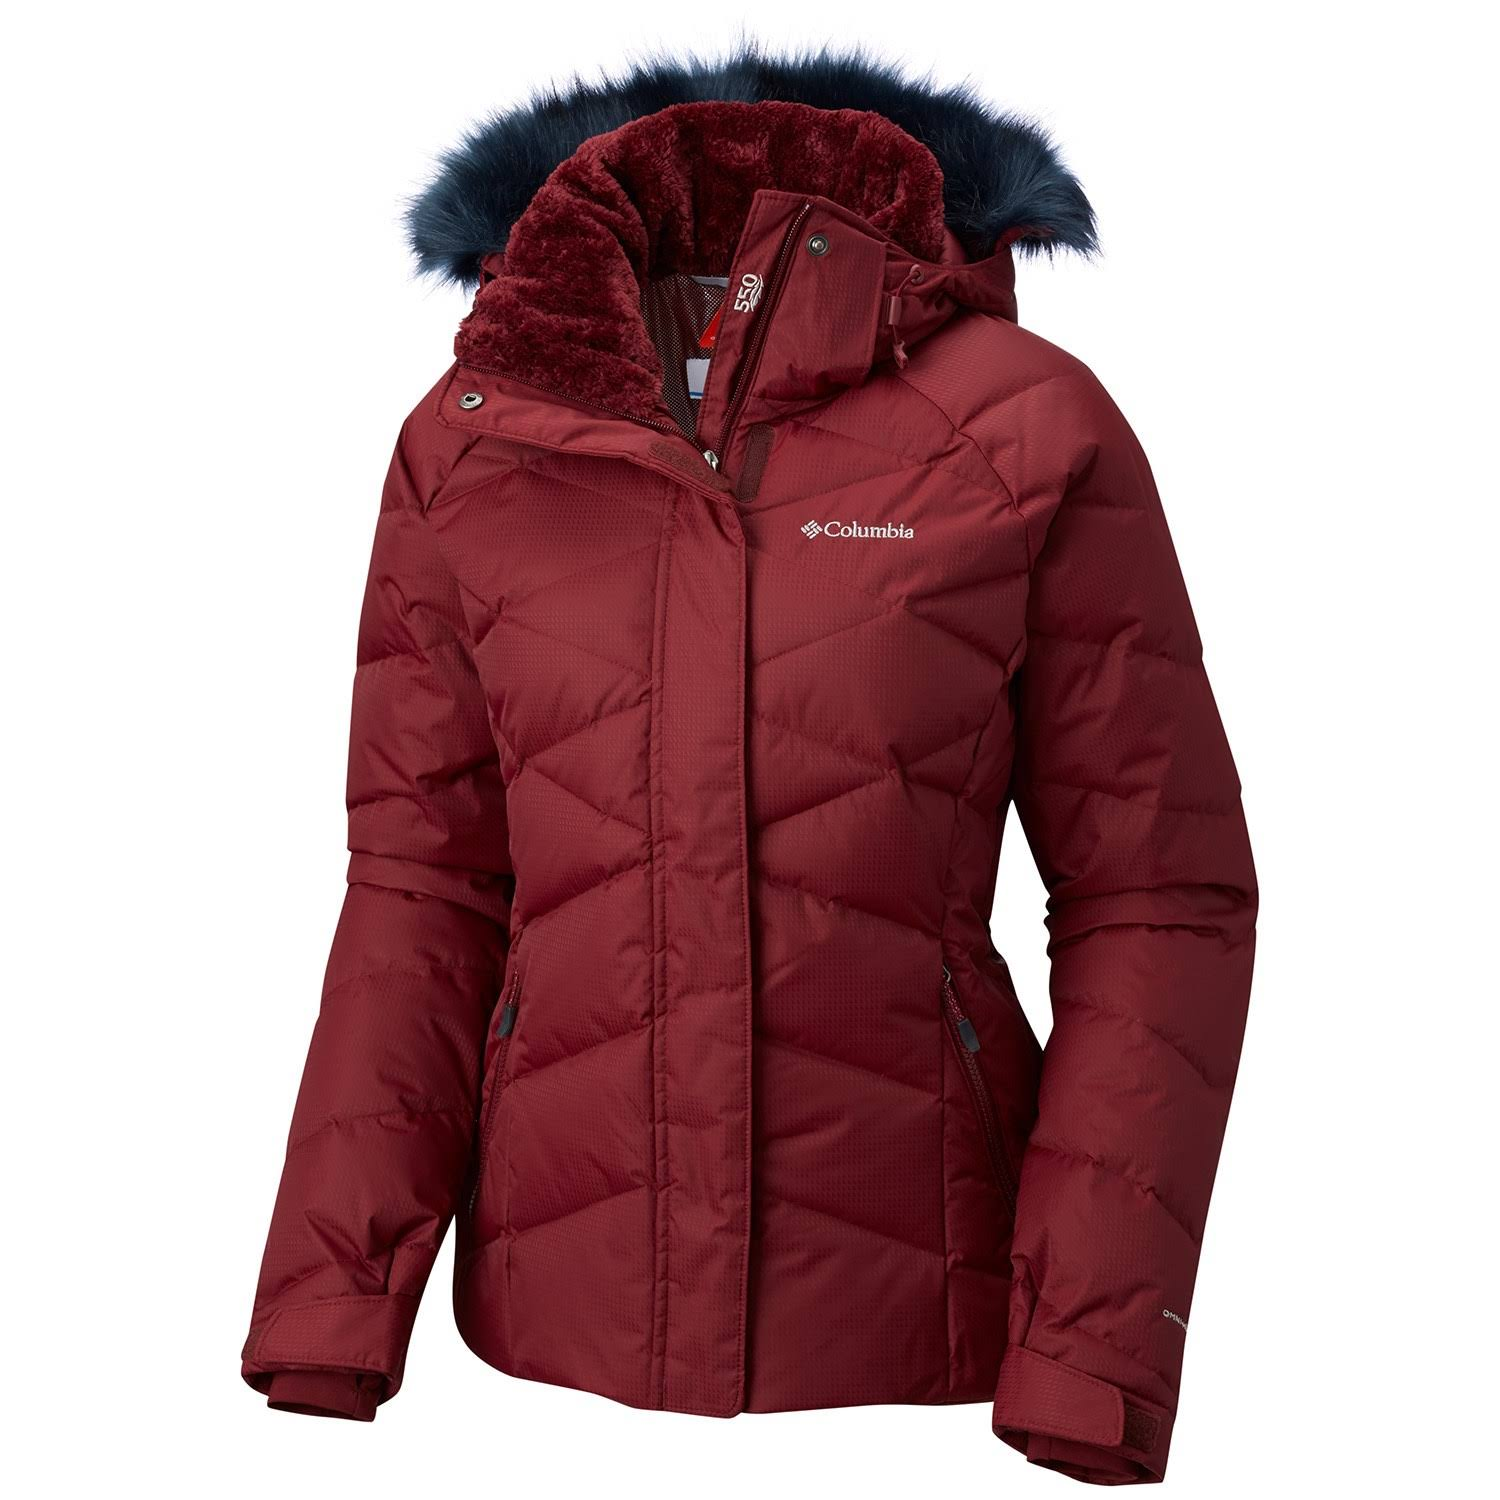 Columbia Women's Lay D Down II Jacket - XS - Rich Wine